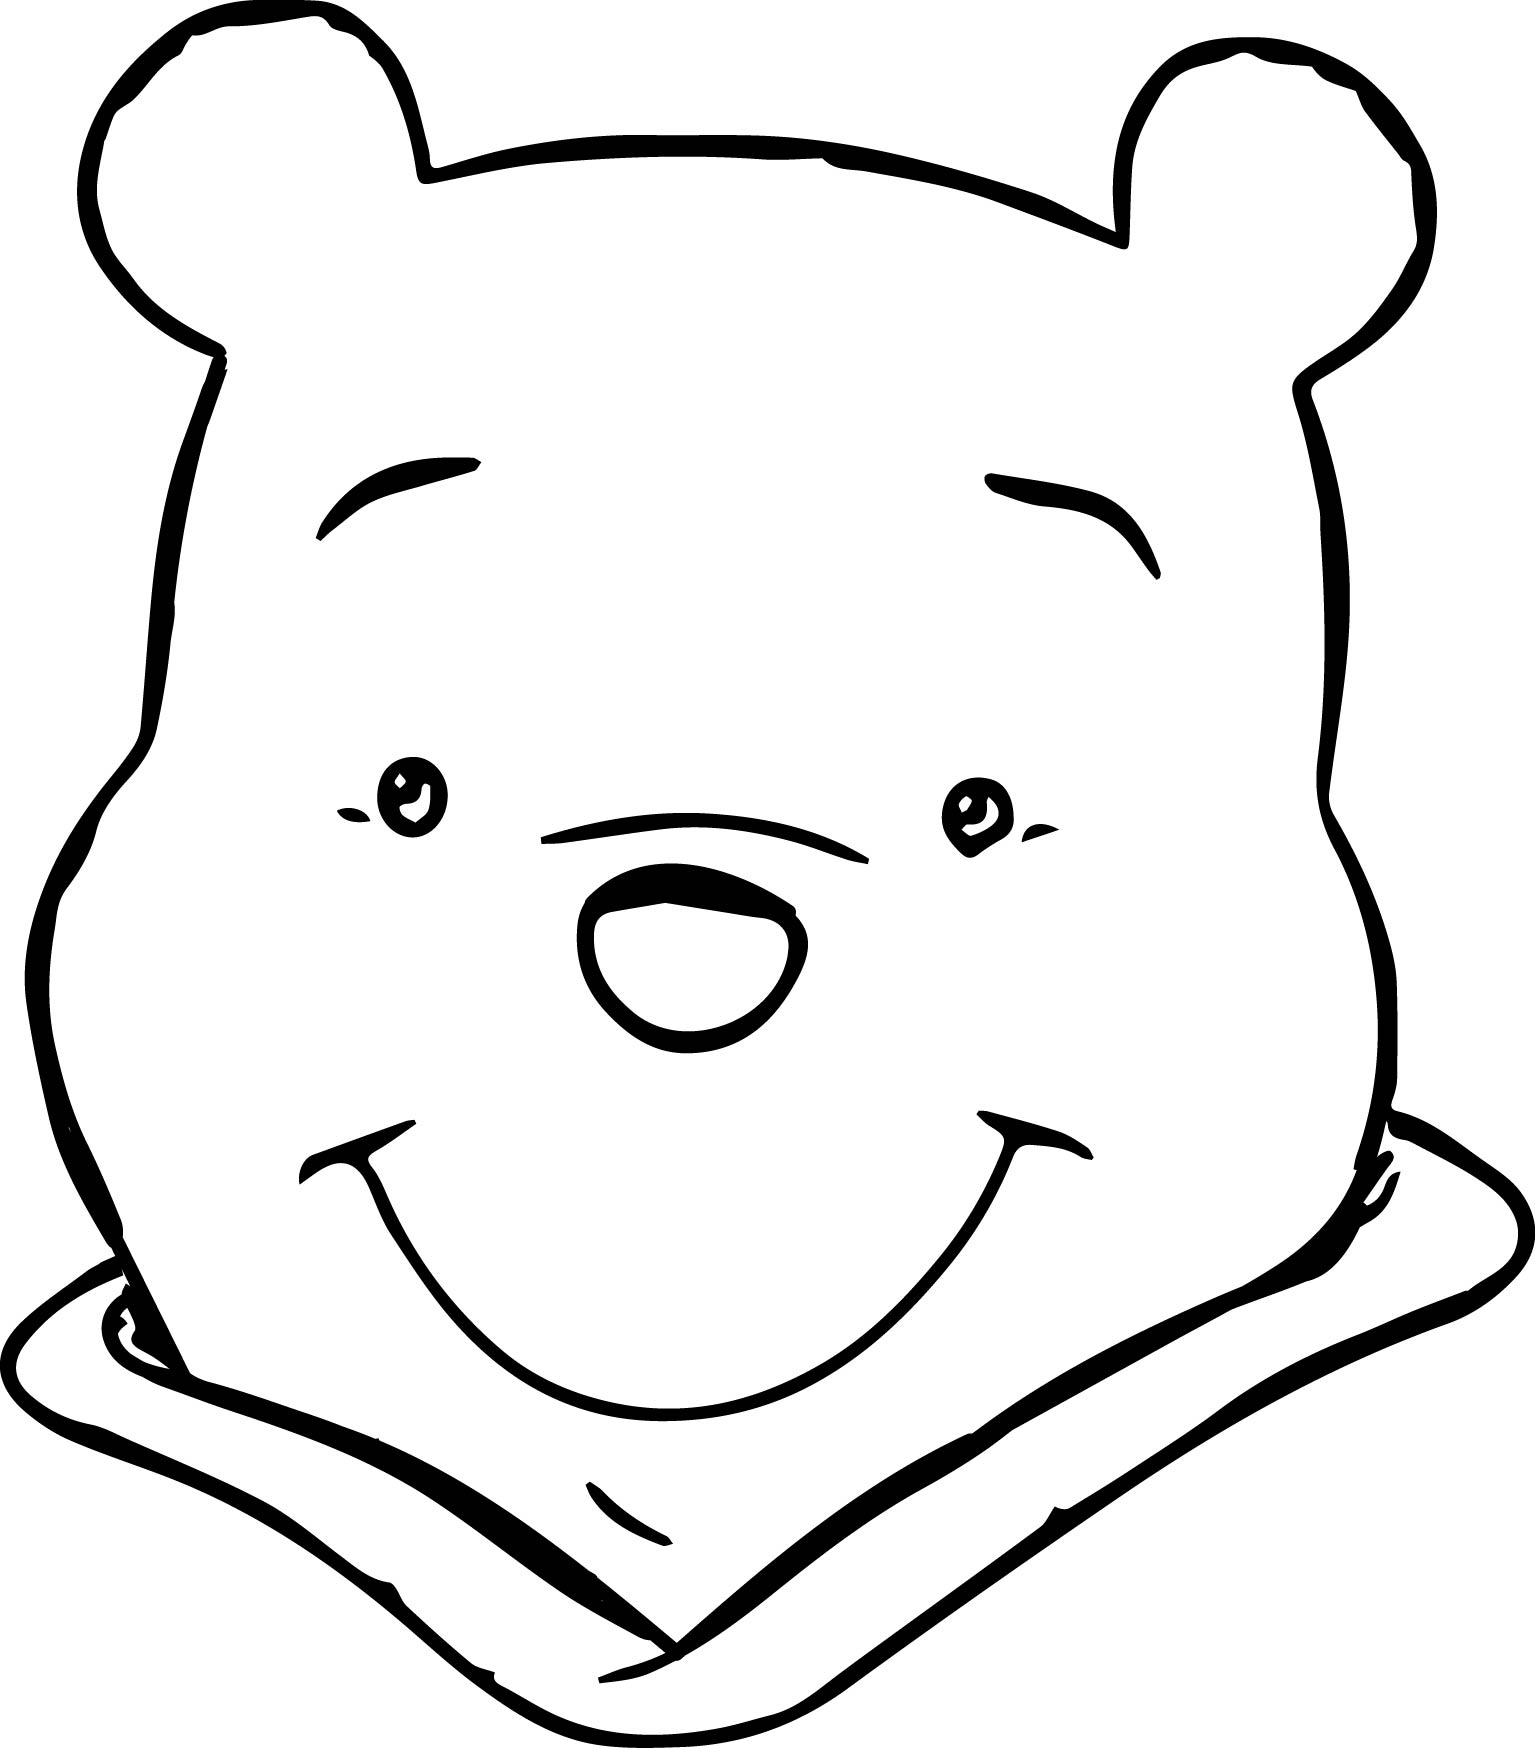 Winnie The Pooh Face Coloring Page : Wecoloringpage